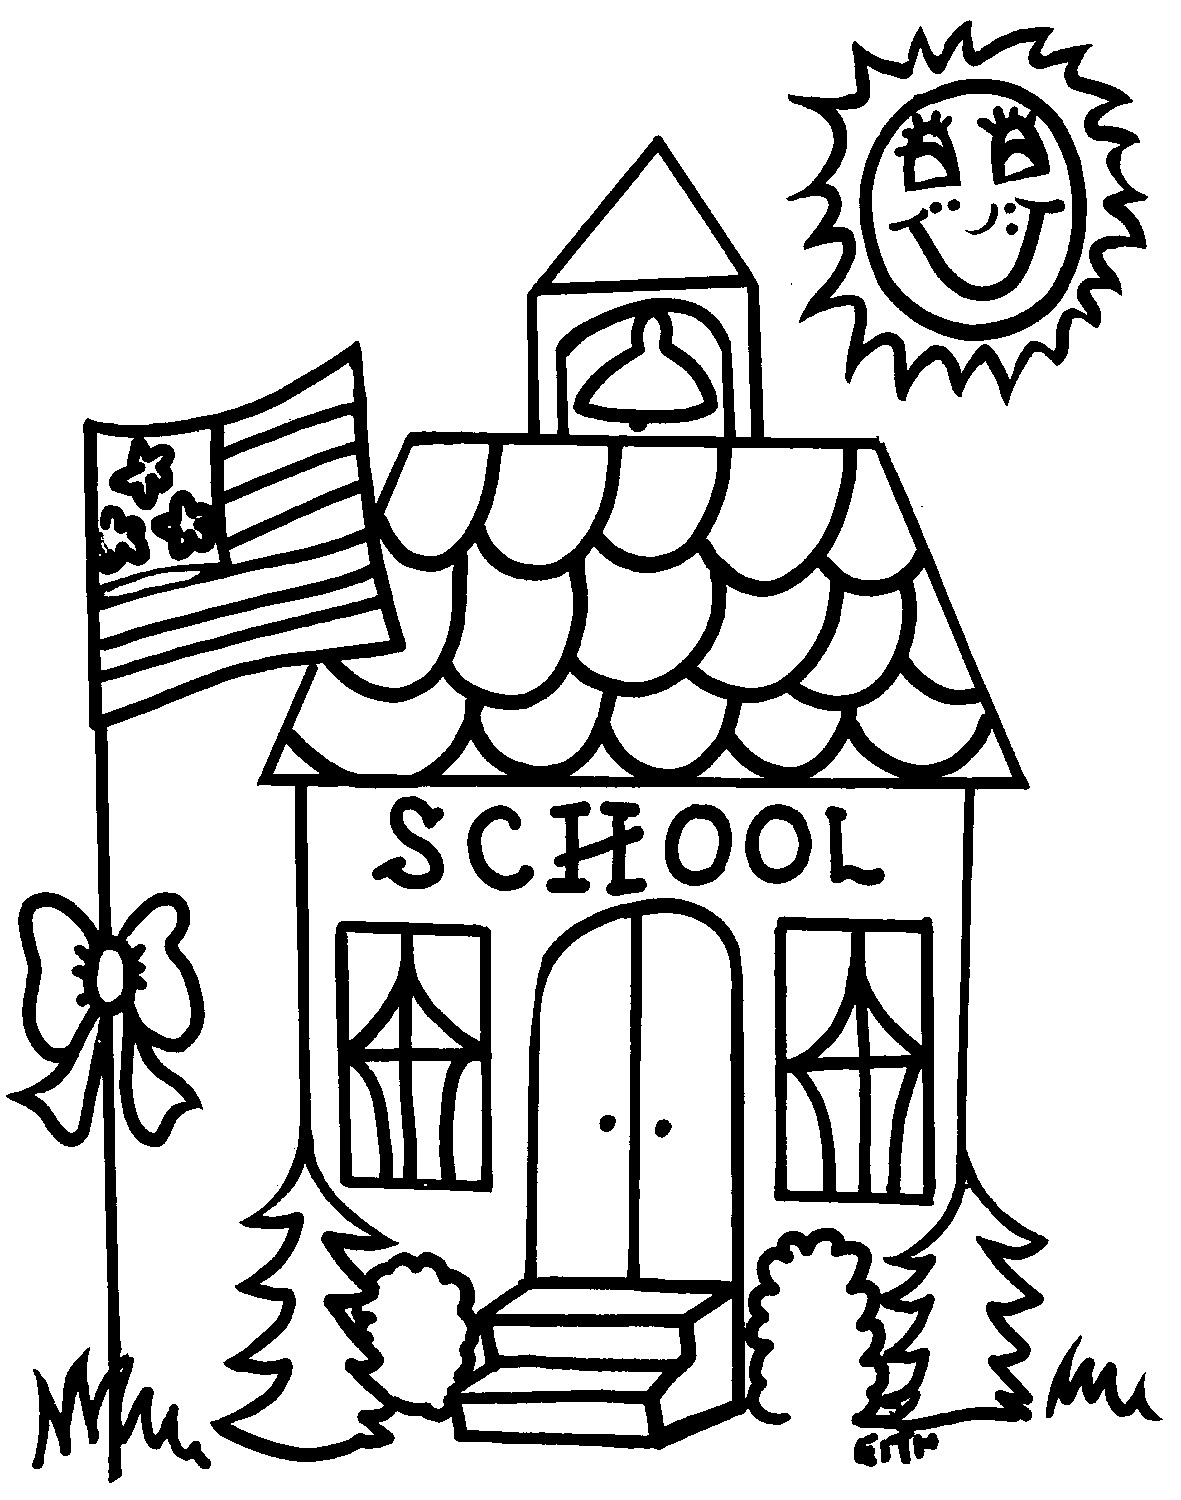 Coloring Pages : Back To Schooling Pages Free Printable Page - Back To School Free Printable Coloring Pages